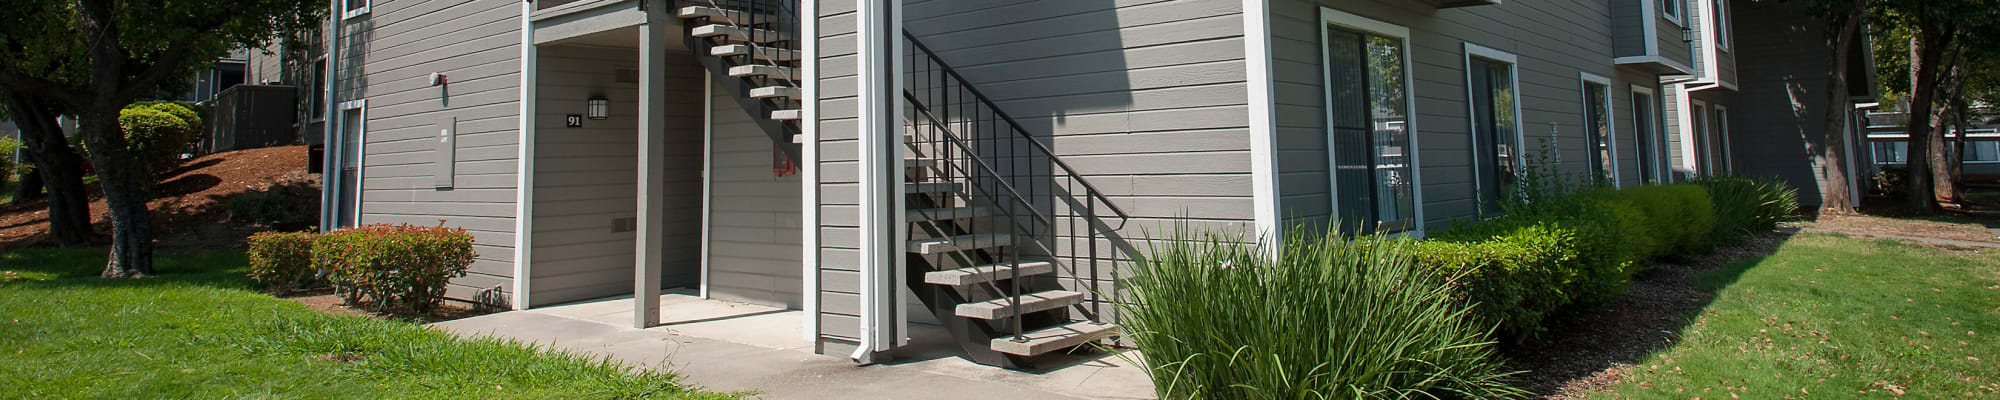 Photos of Sandpiper Village Apartment Homes in Vacaville ...